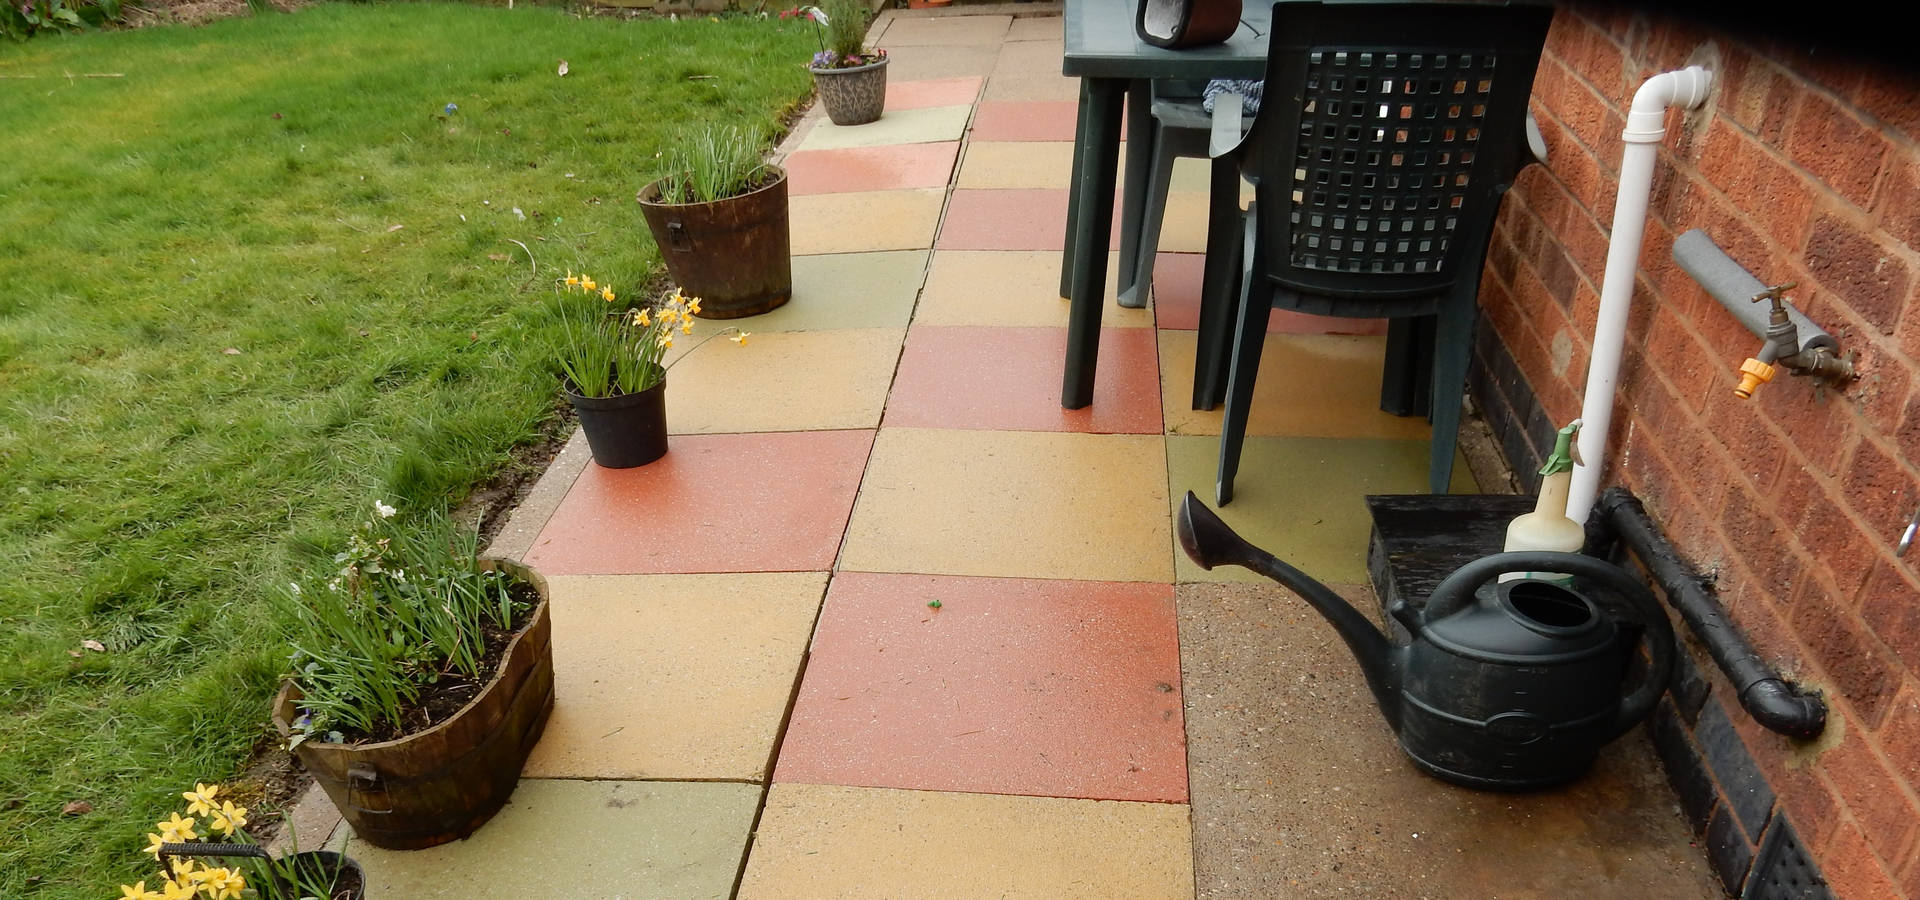 Patio After Cleaining